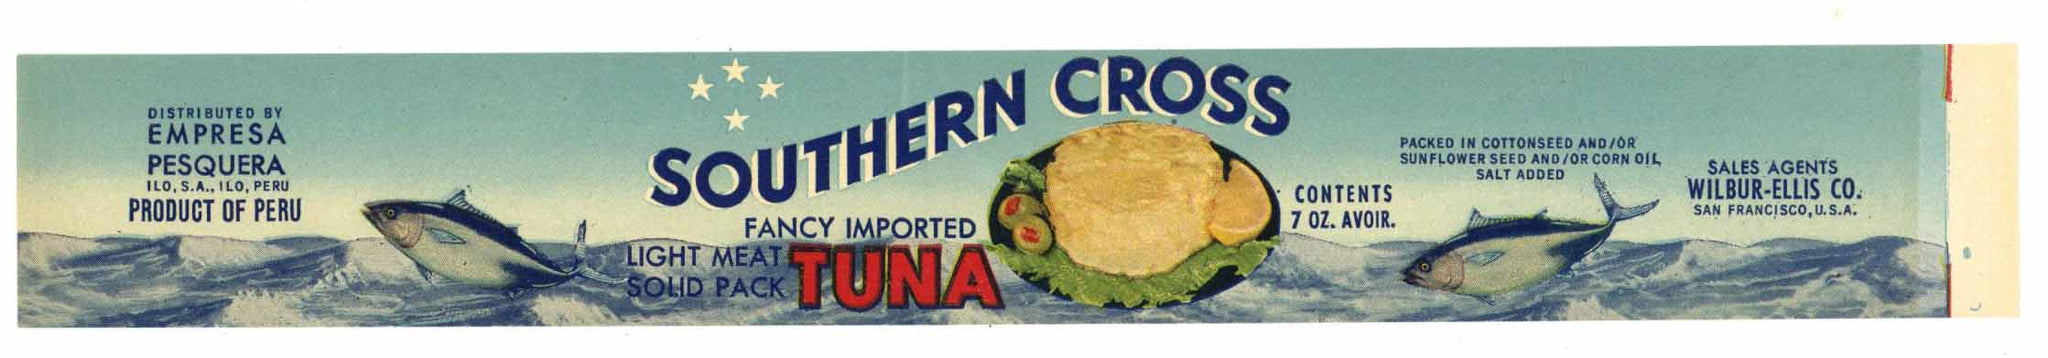 Southern Cross Brand Vintage Tuna Can Label